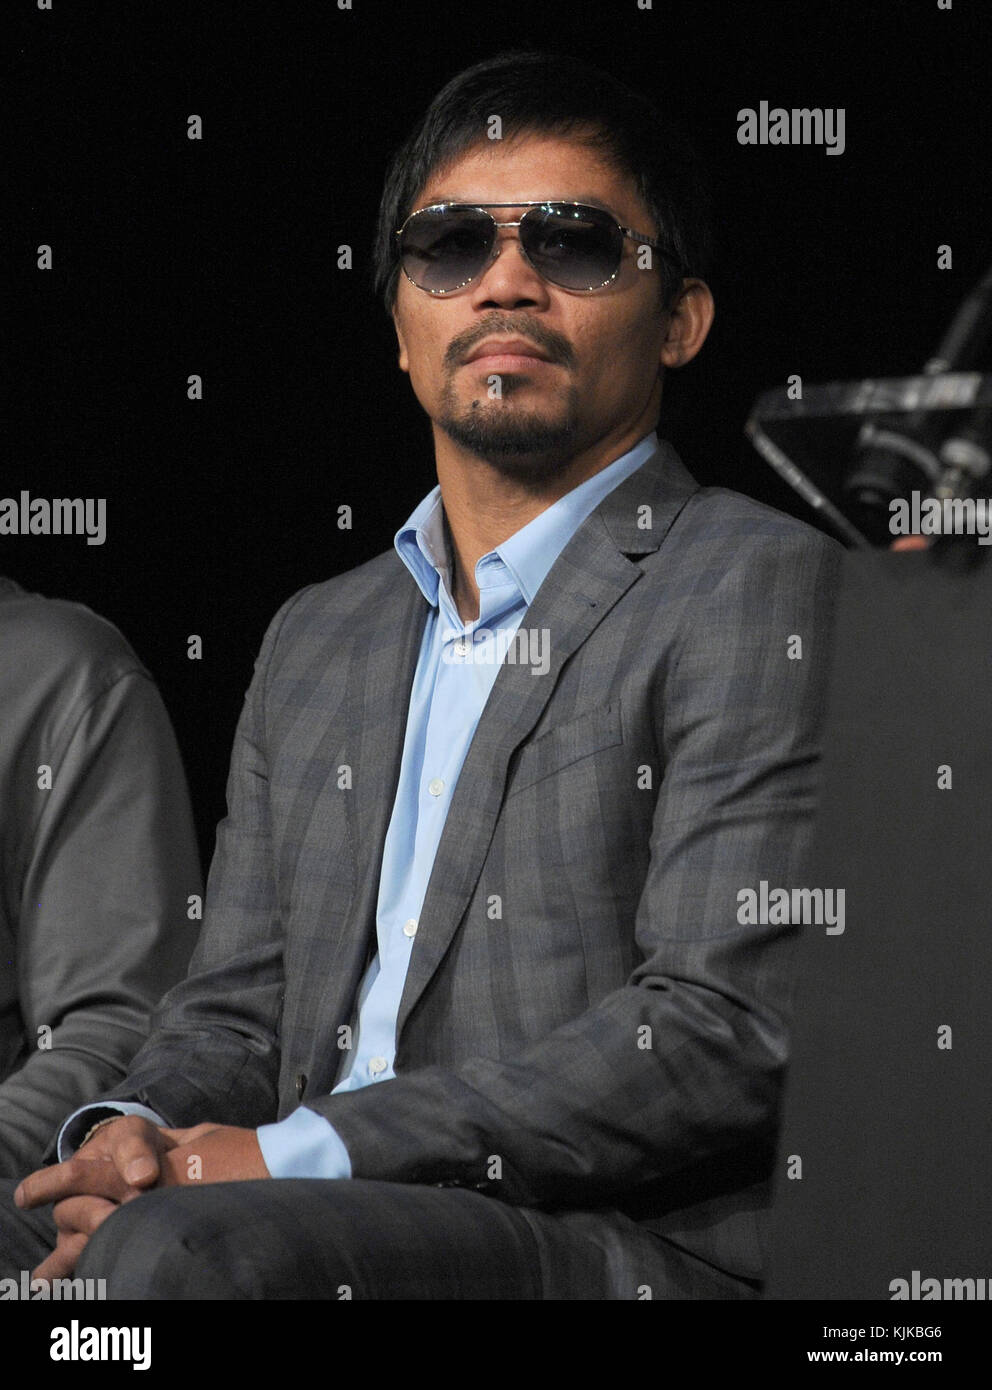 NEW YORK, NY - JANUARY 21: Boxing's pound-for-pound superstars, Congressman Manny Pacquiao and Timothy Bradley - Stock Image